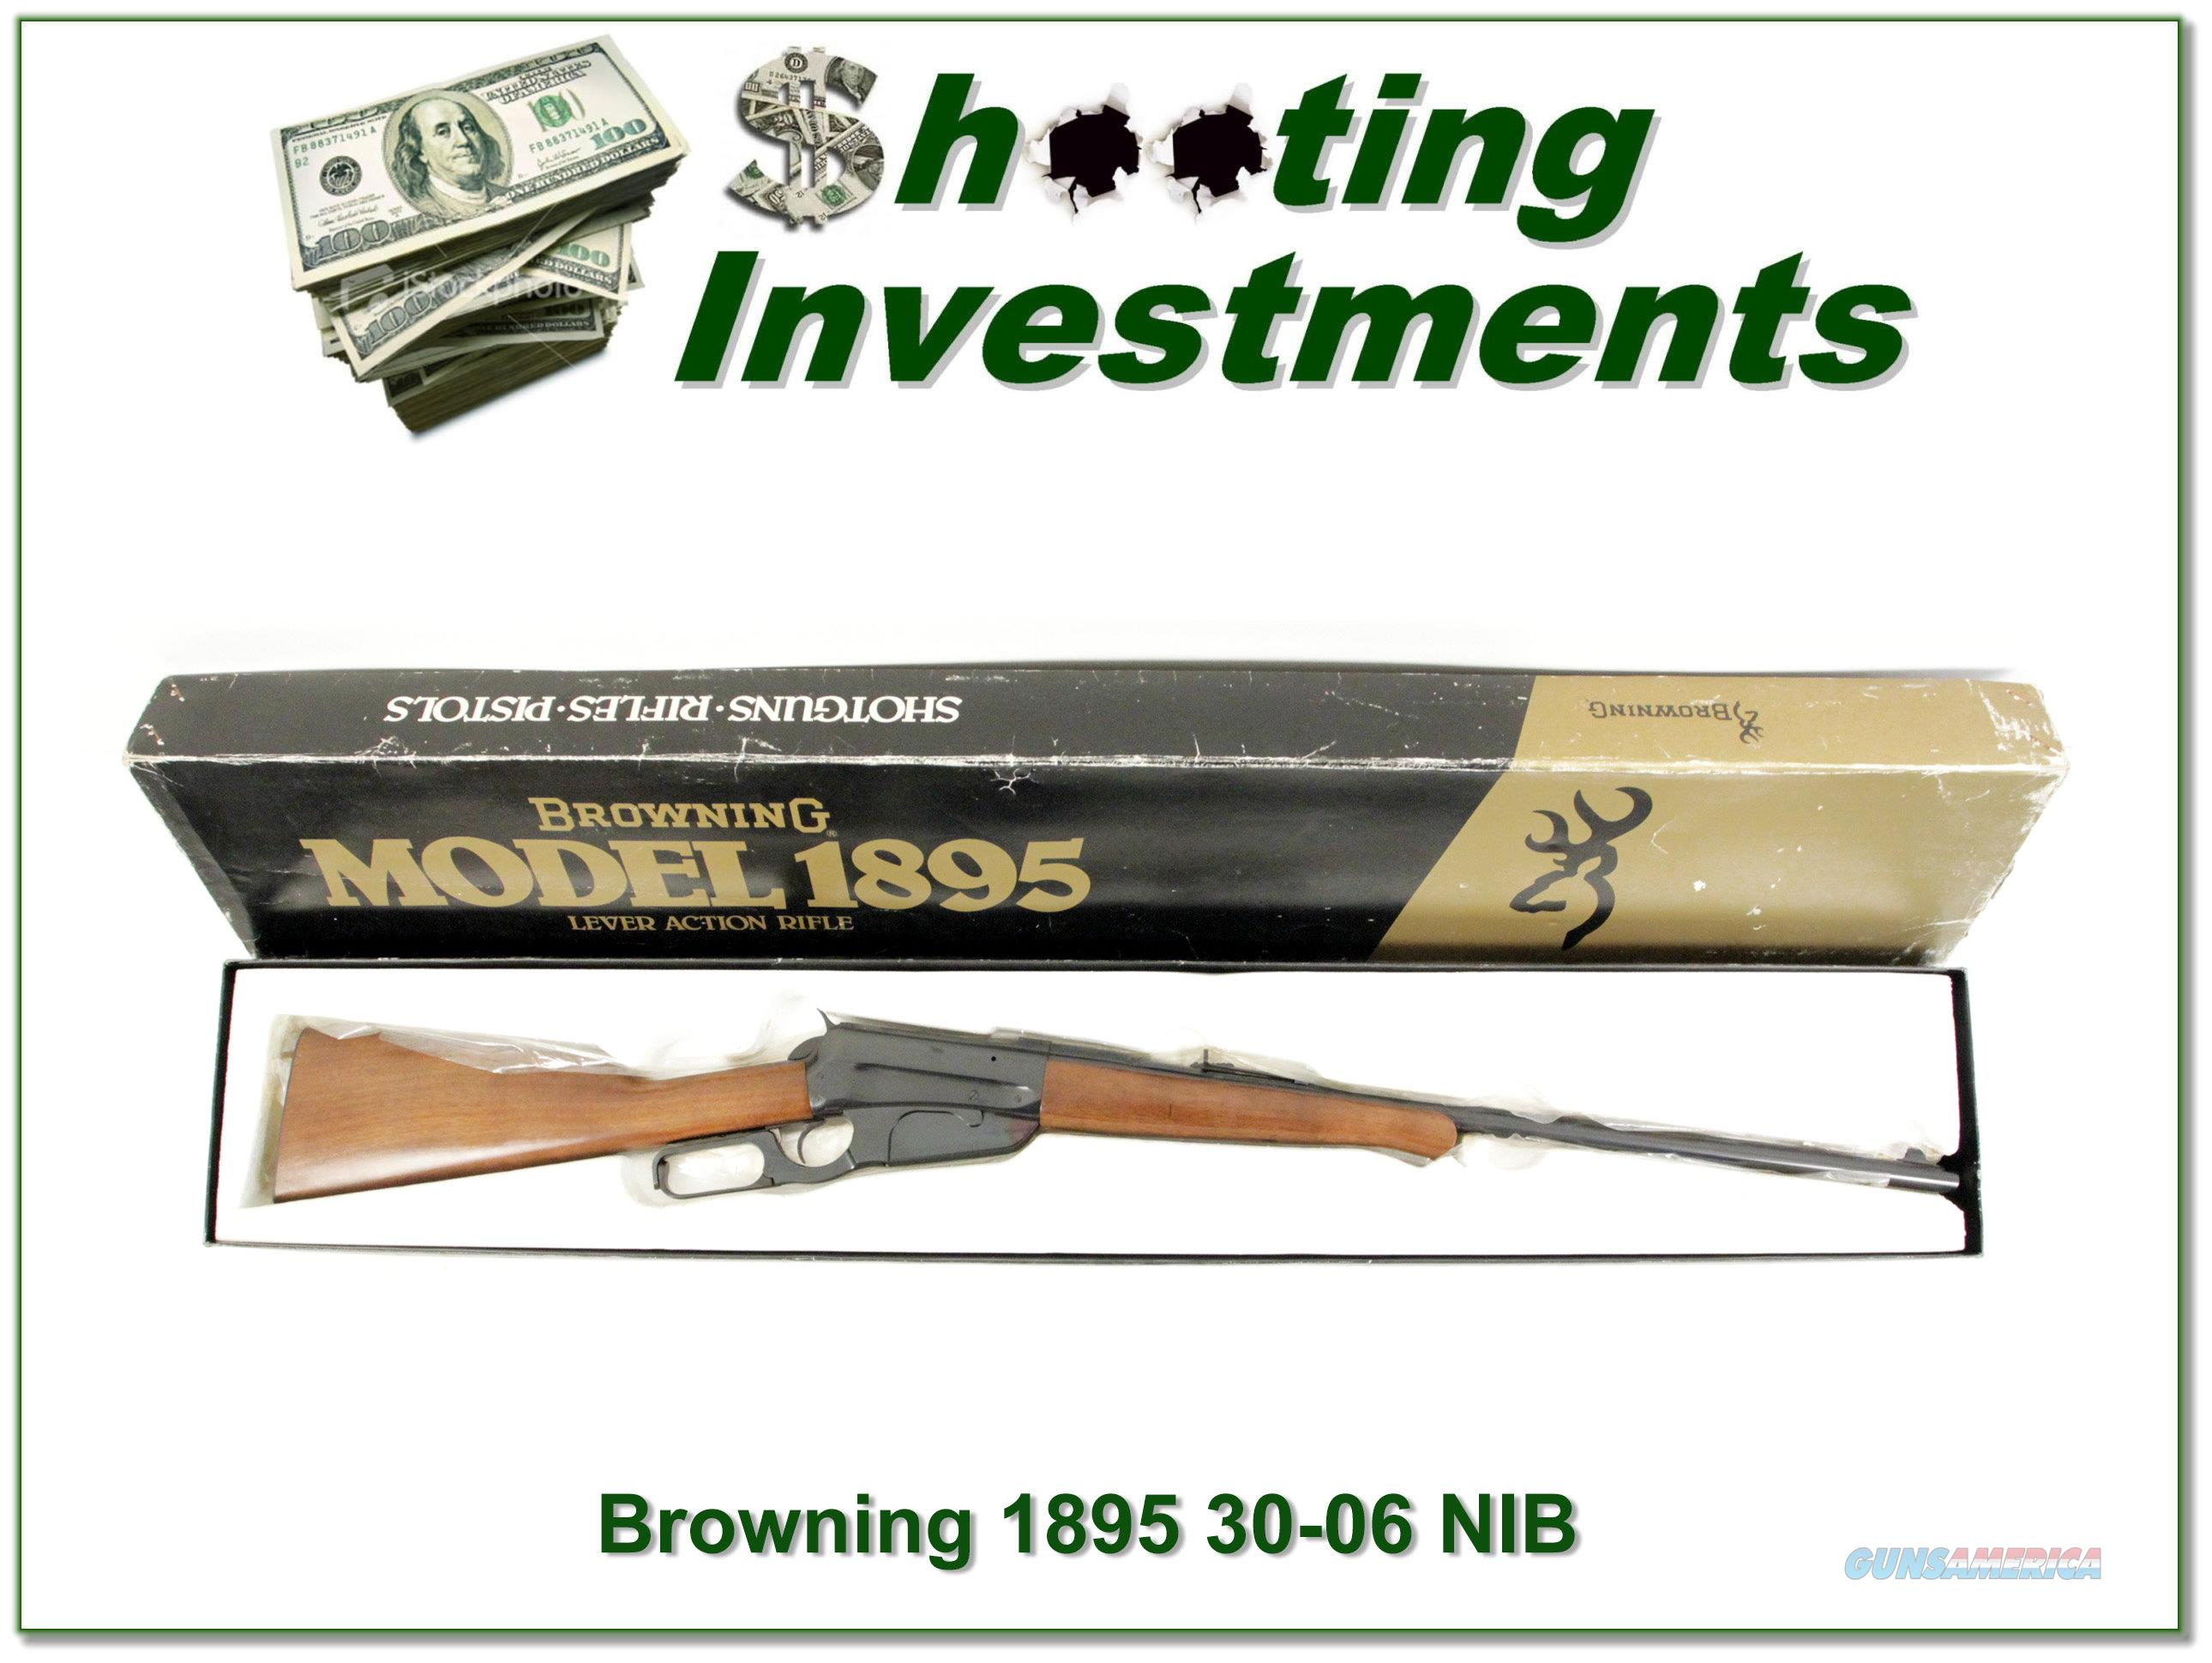 Browning 1895 30-06 Level New in Box!   Guns > Rifles > Browning Rifles > Lever Action